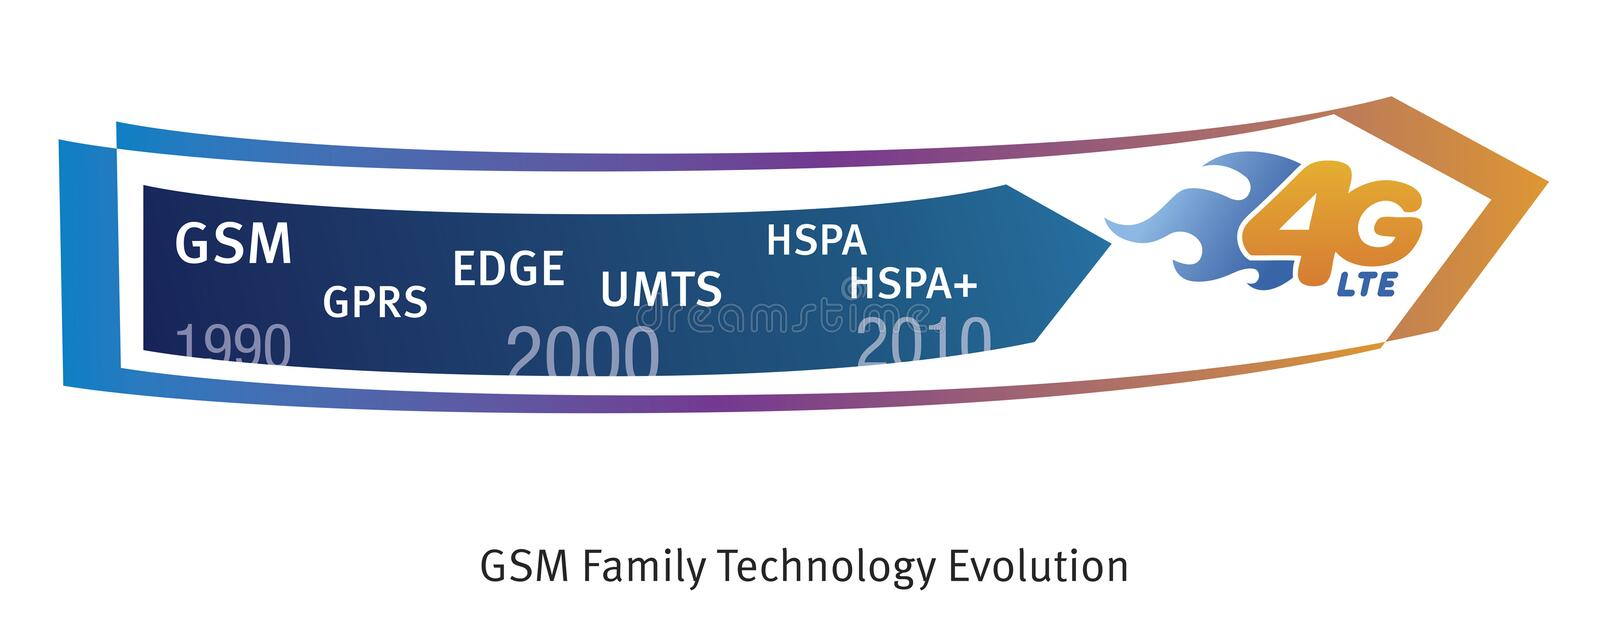 GSM Evolution. Illustration of GSM familiy technology evolotuion from 1990 to present time. It features the following standards: GSM, GPRS, EDGE, UMTS, HSPA